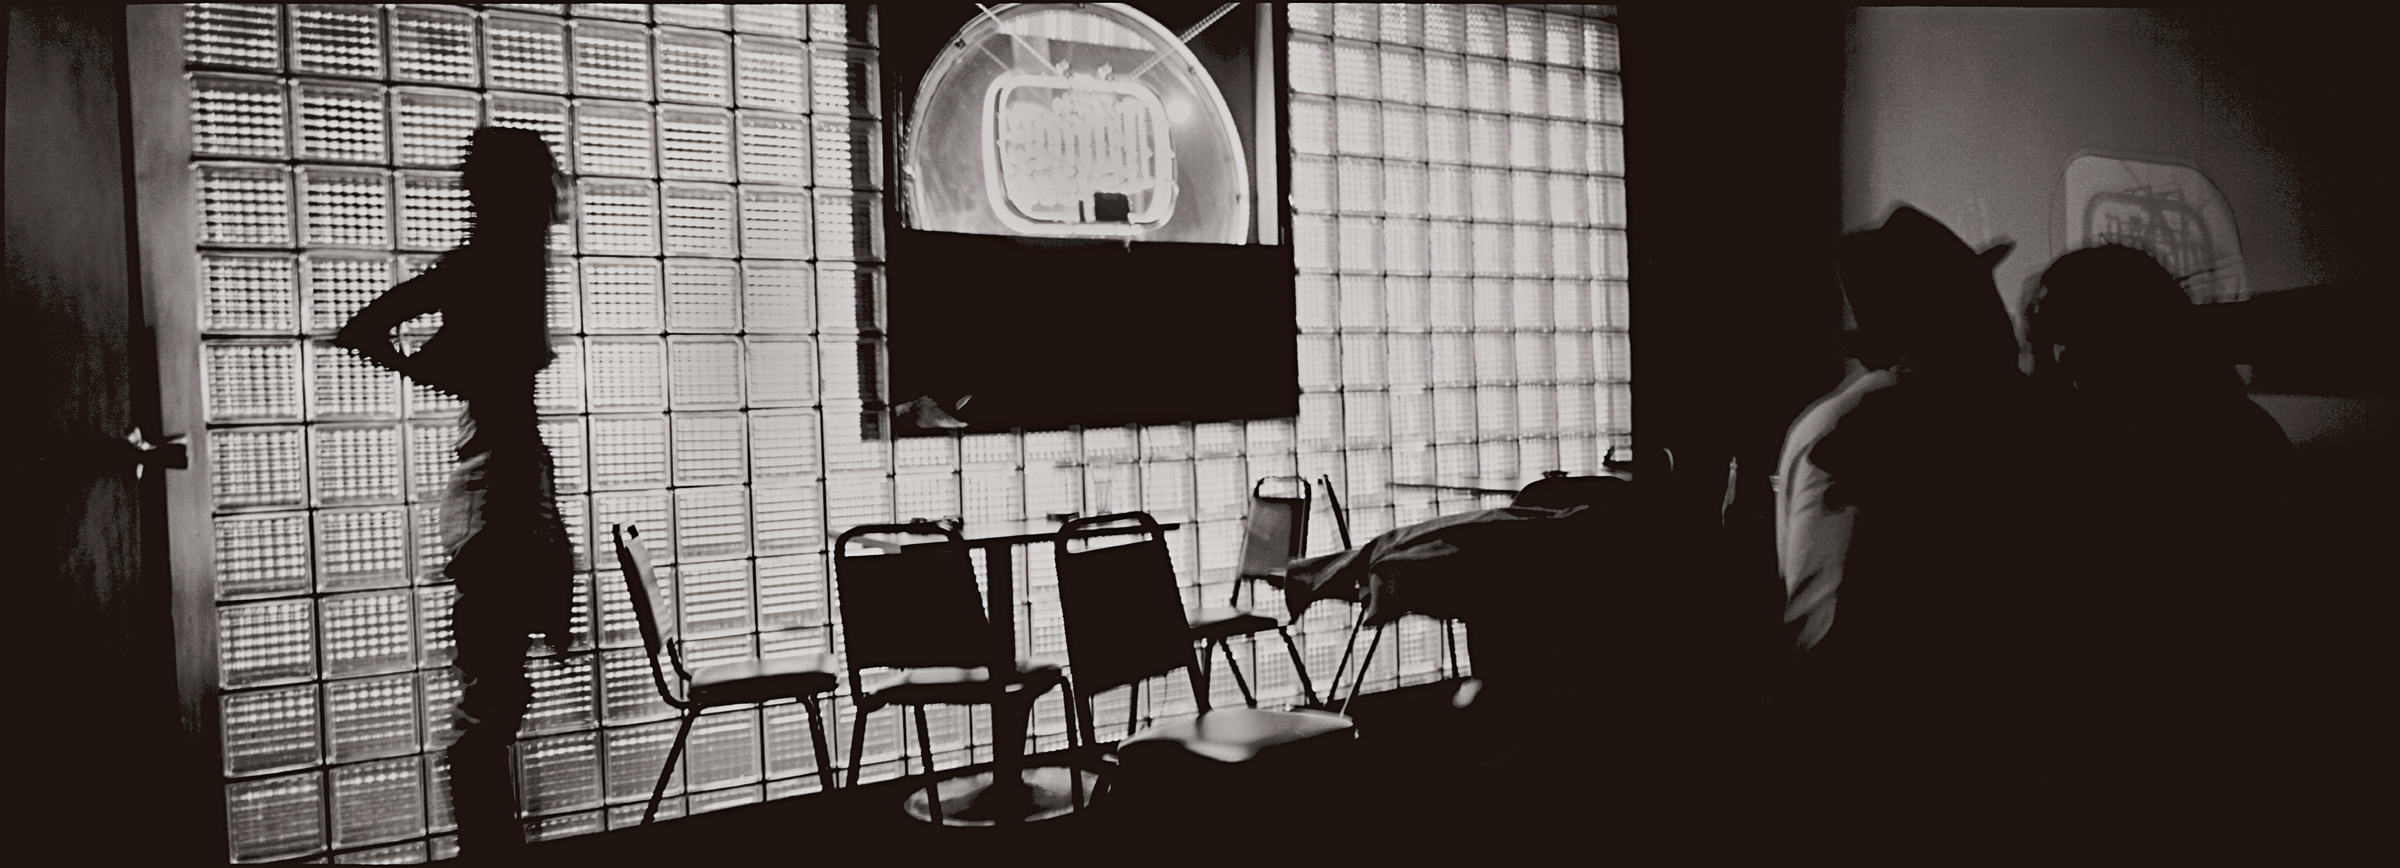 """Jason Horowitz  Untitled , 1991 Gelatin silver print 18"""" x 54"""" on 22""""x58"""" paper Matted in 26 1/2"""" x 60 1/2"""" frame One of three existing silver prints"""